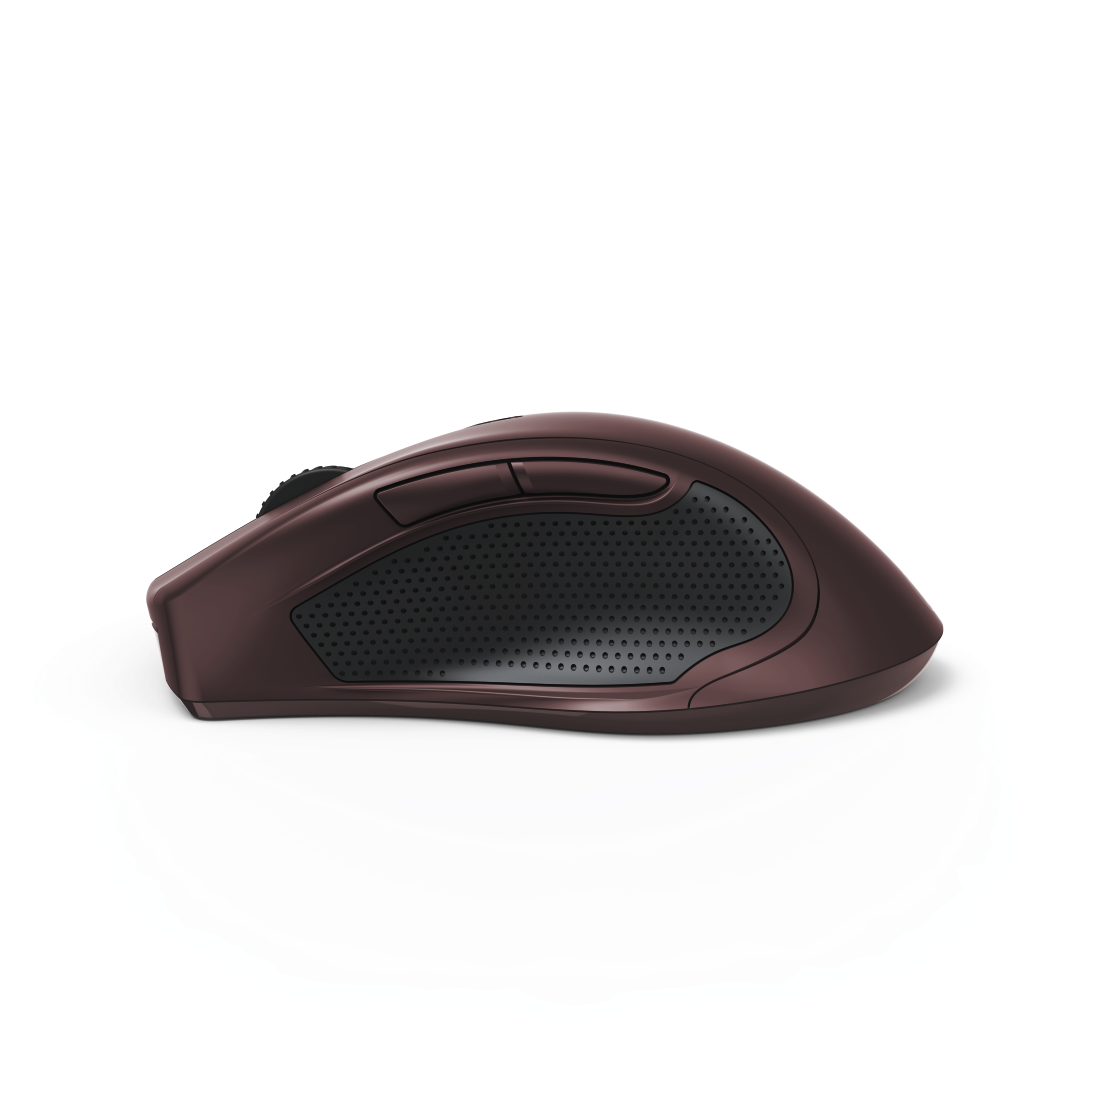 "abx4 High-Res Image4 - Hama, ""MW-900"" 7-Button Laser Wireless Mouse, Auto-dpi, bordeaux"